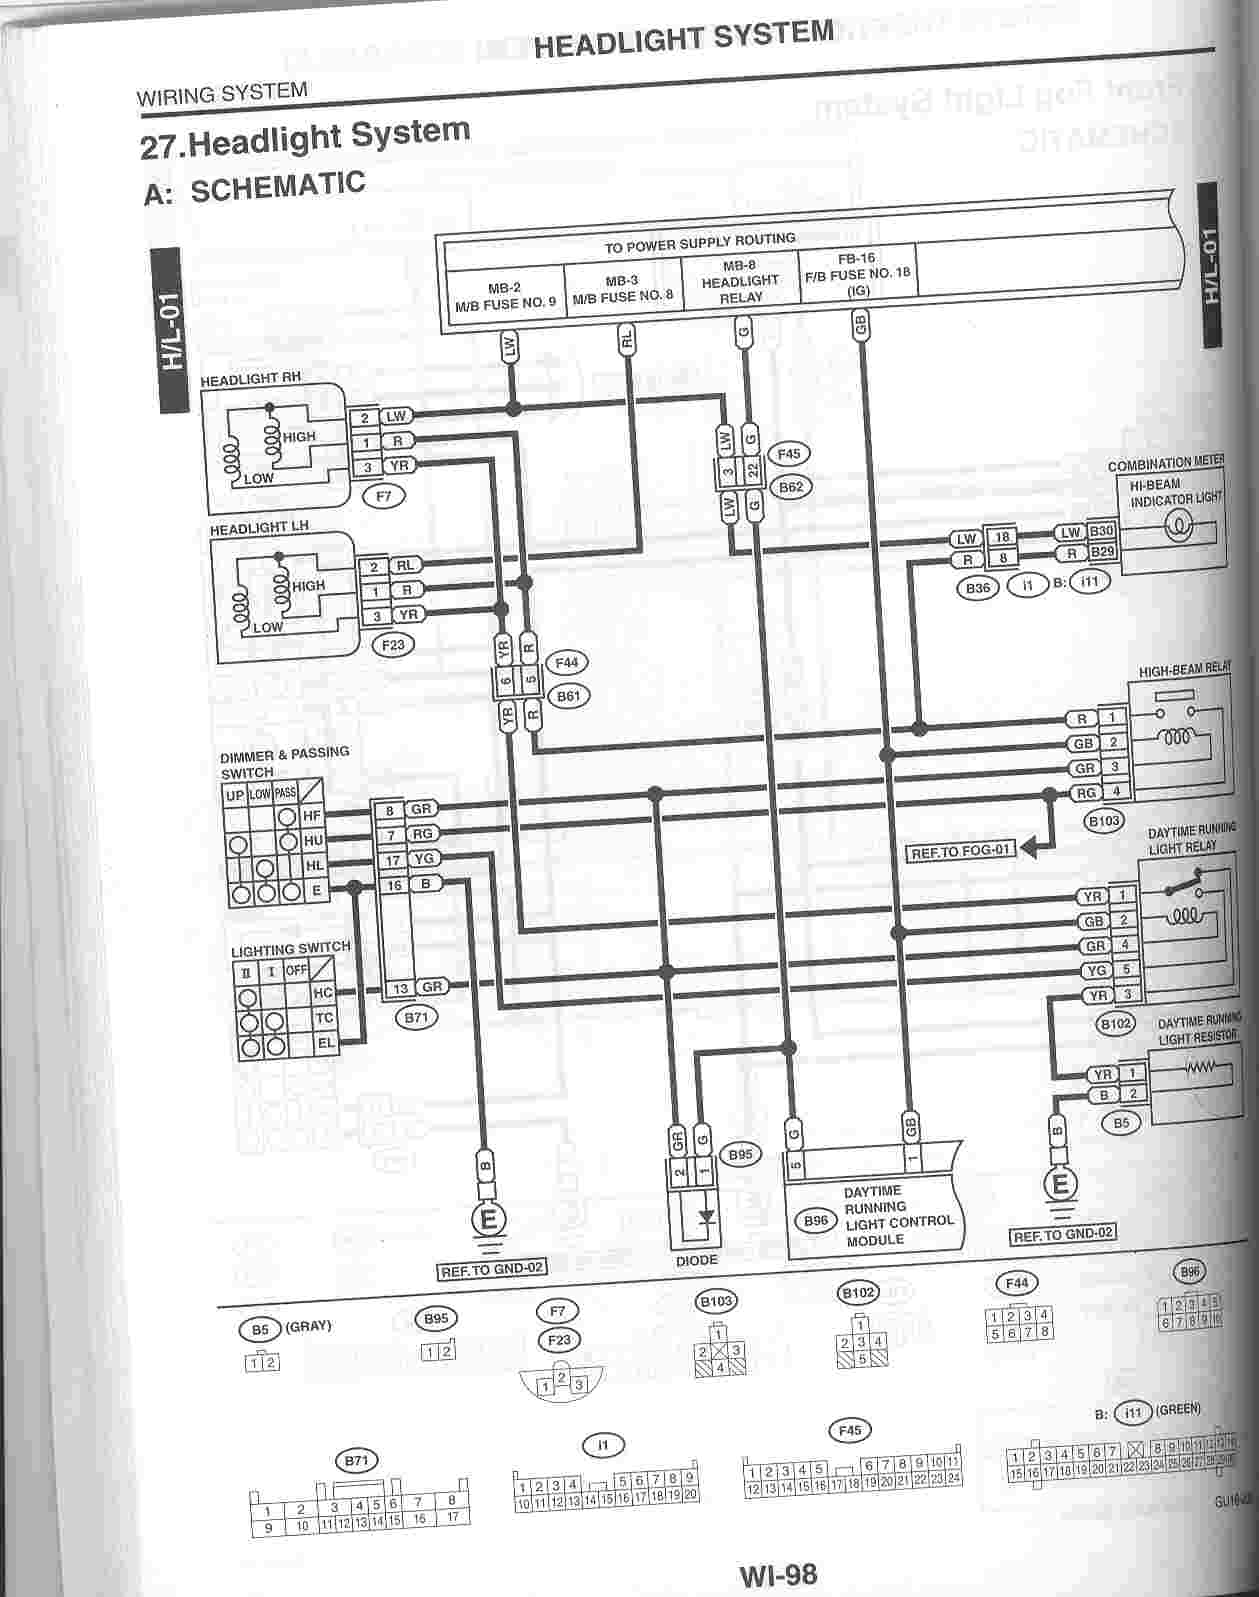 9007 Headlight Wiring Diagram Manual Guide